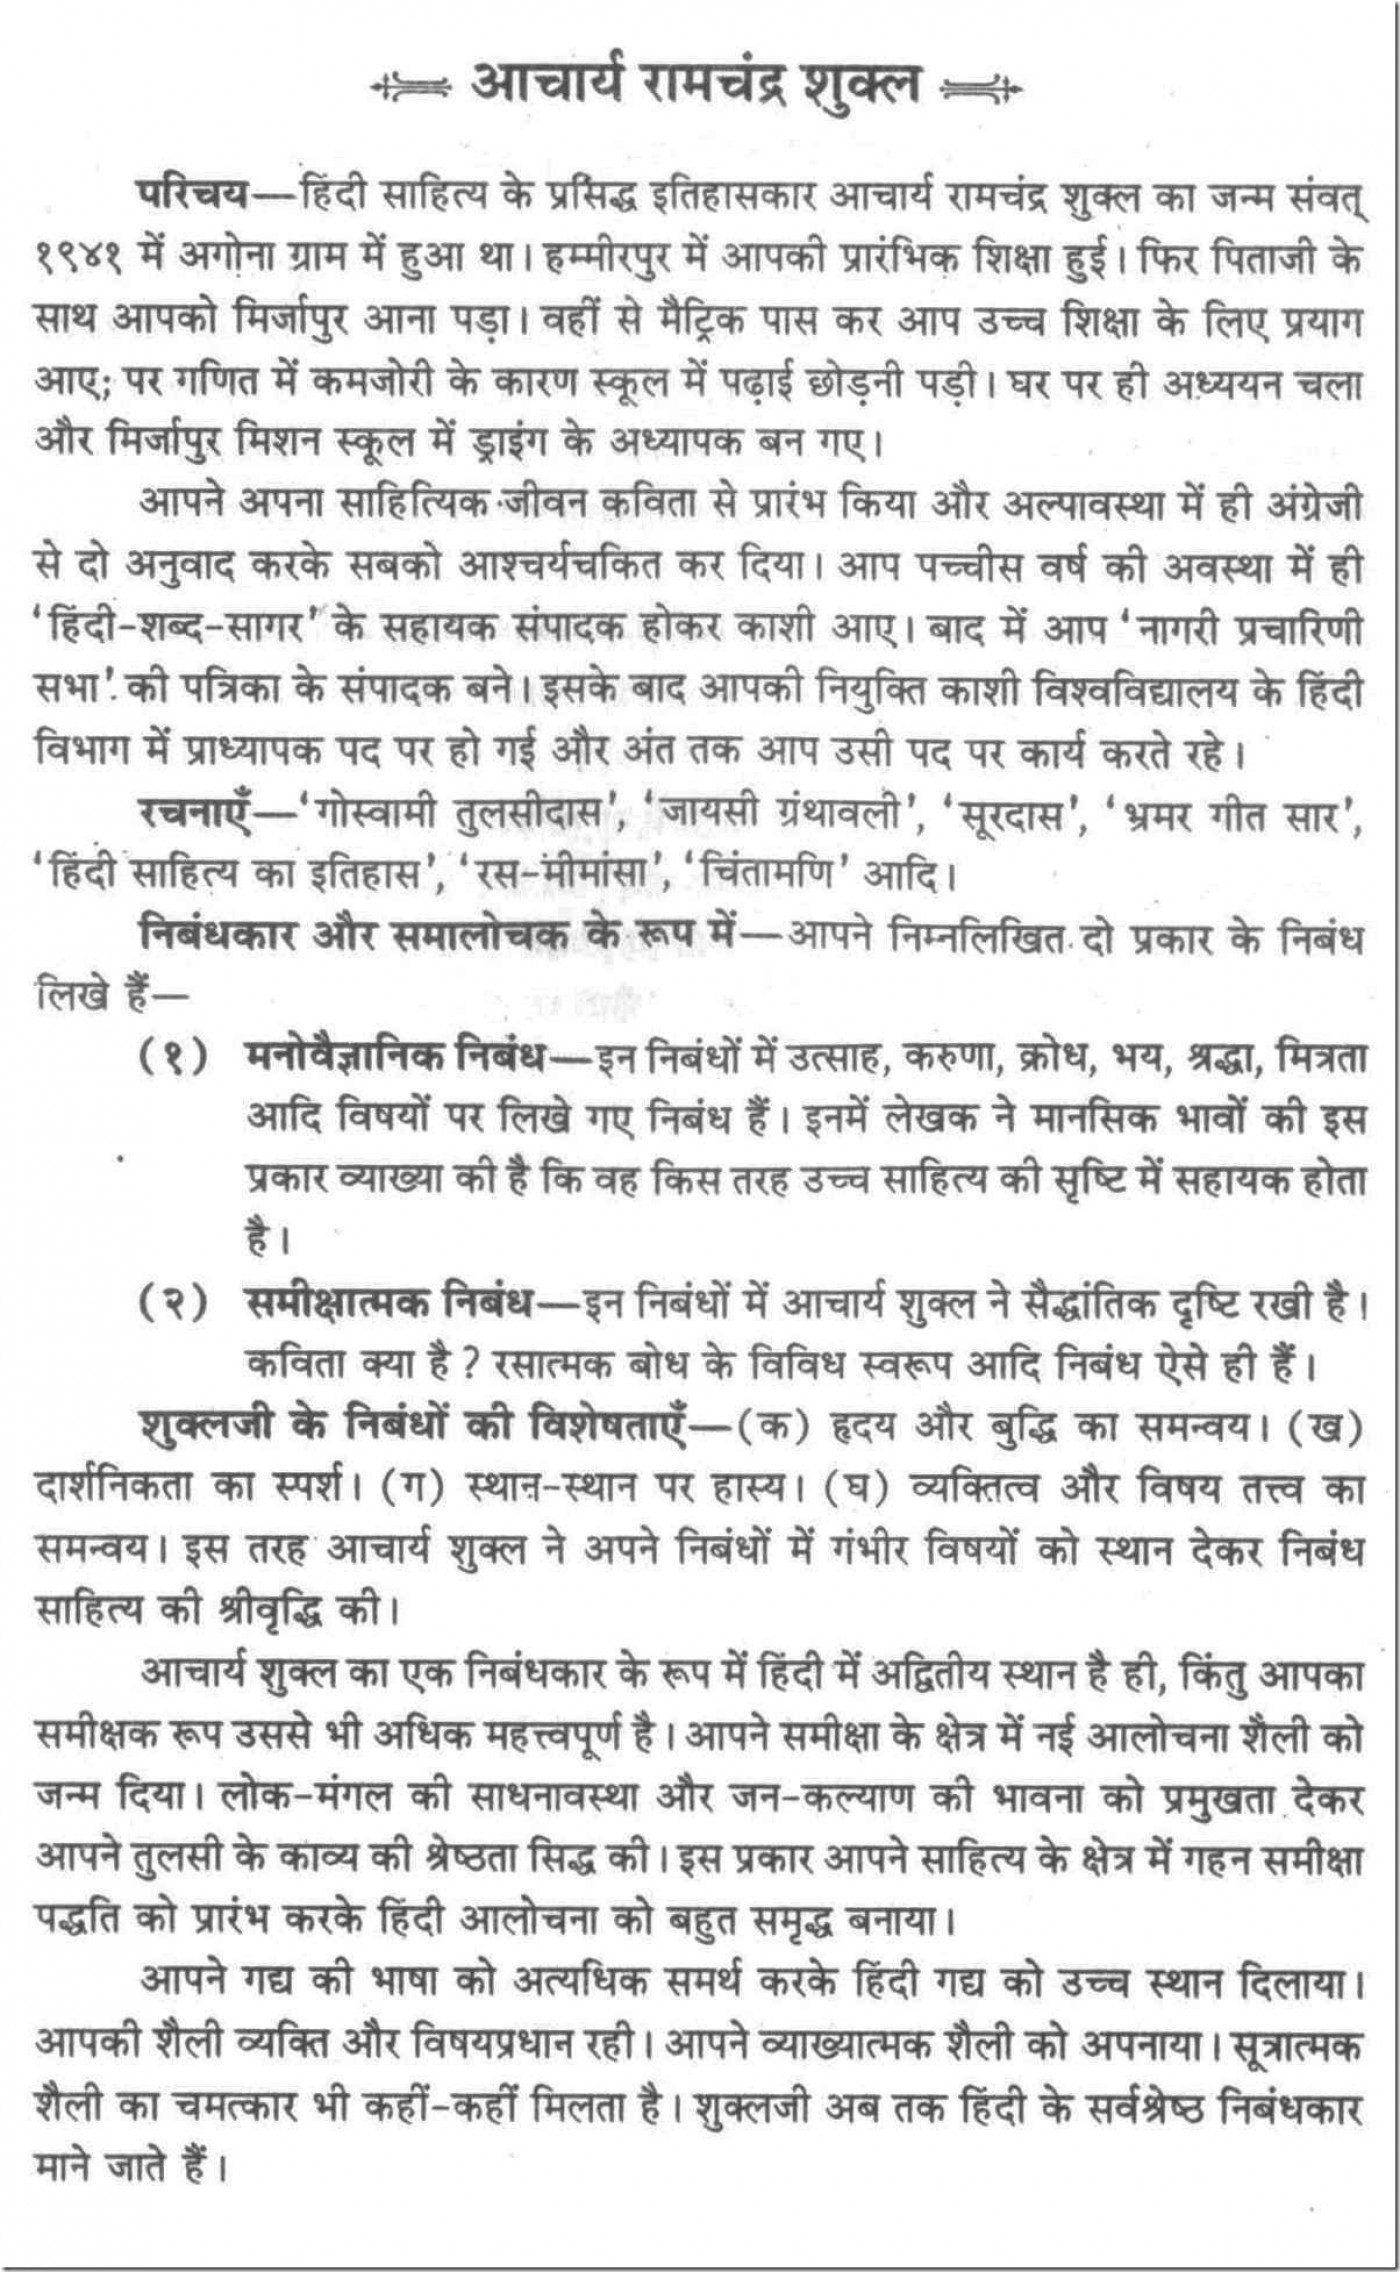 010 Essay On Helping Friend In Trouble 100018 Thumb Excellent A Narrative Hindi 1400